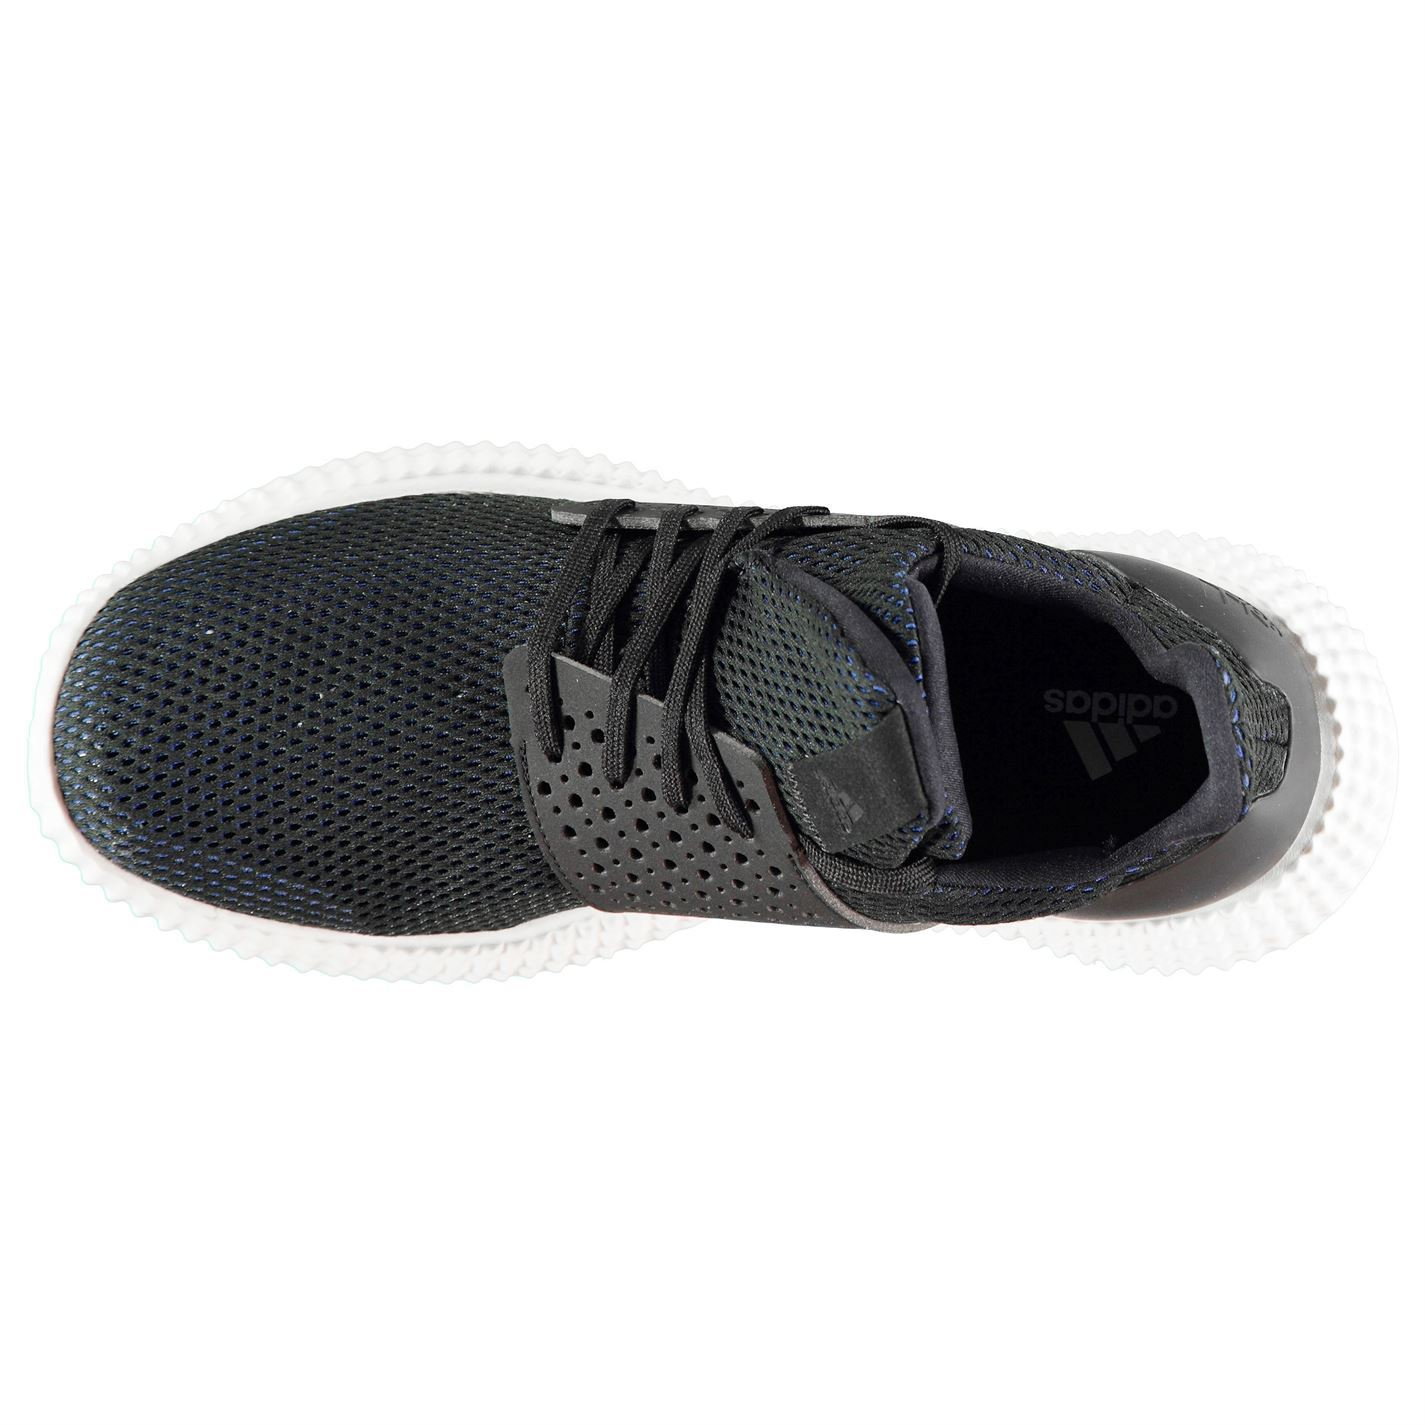 1b40eaa4f7c ... adidas Athletics 24 7 Fitness Training Shoes Mens Black White Trainers  Sneakers